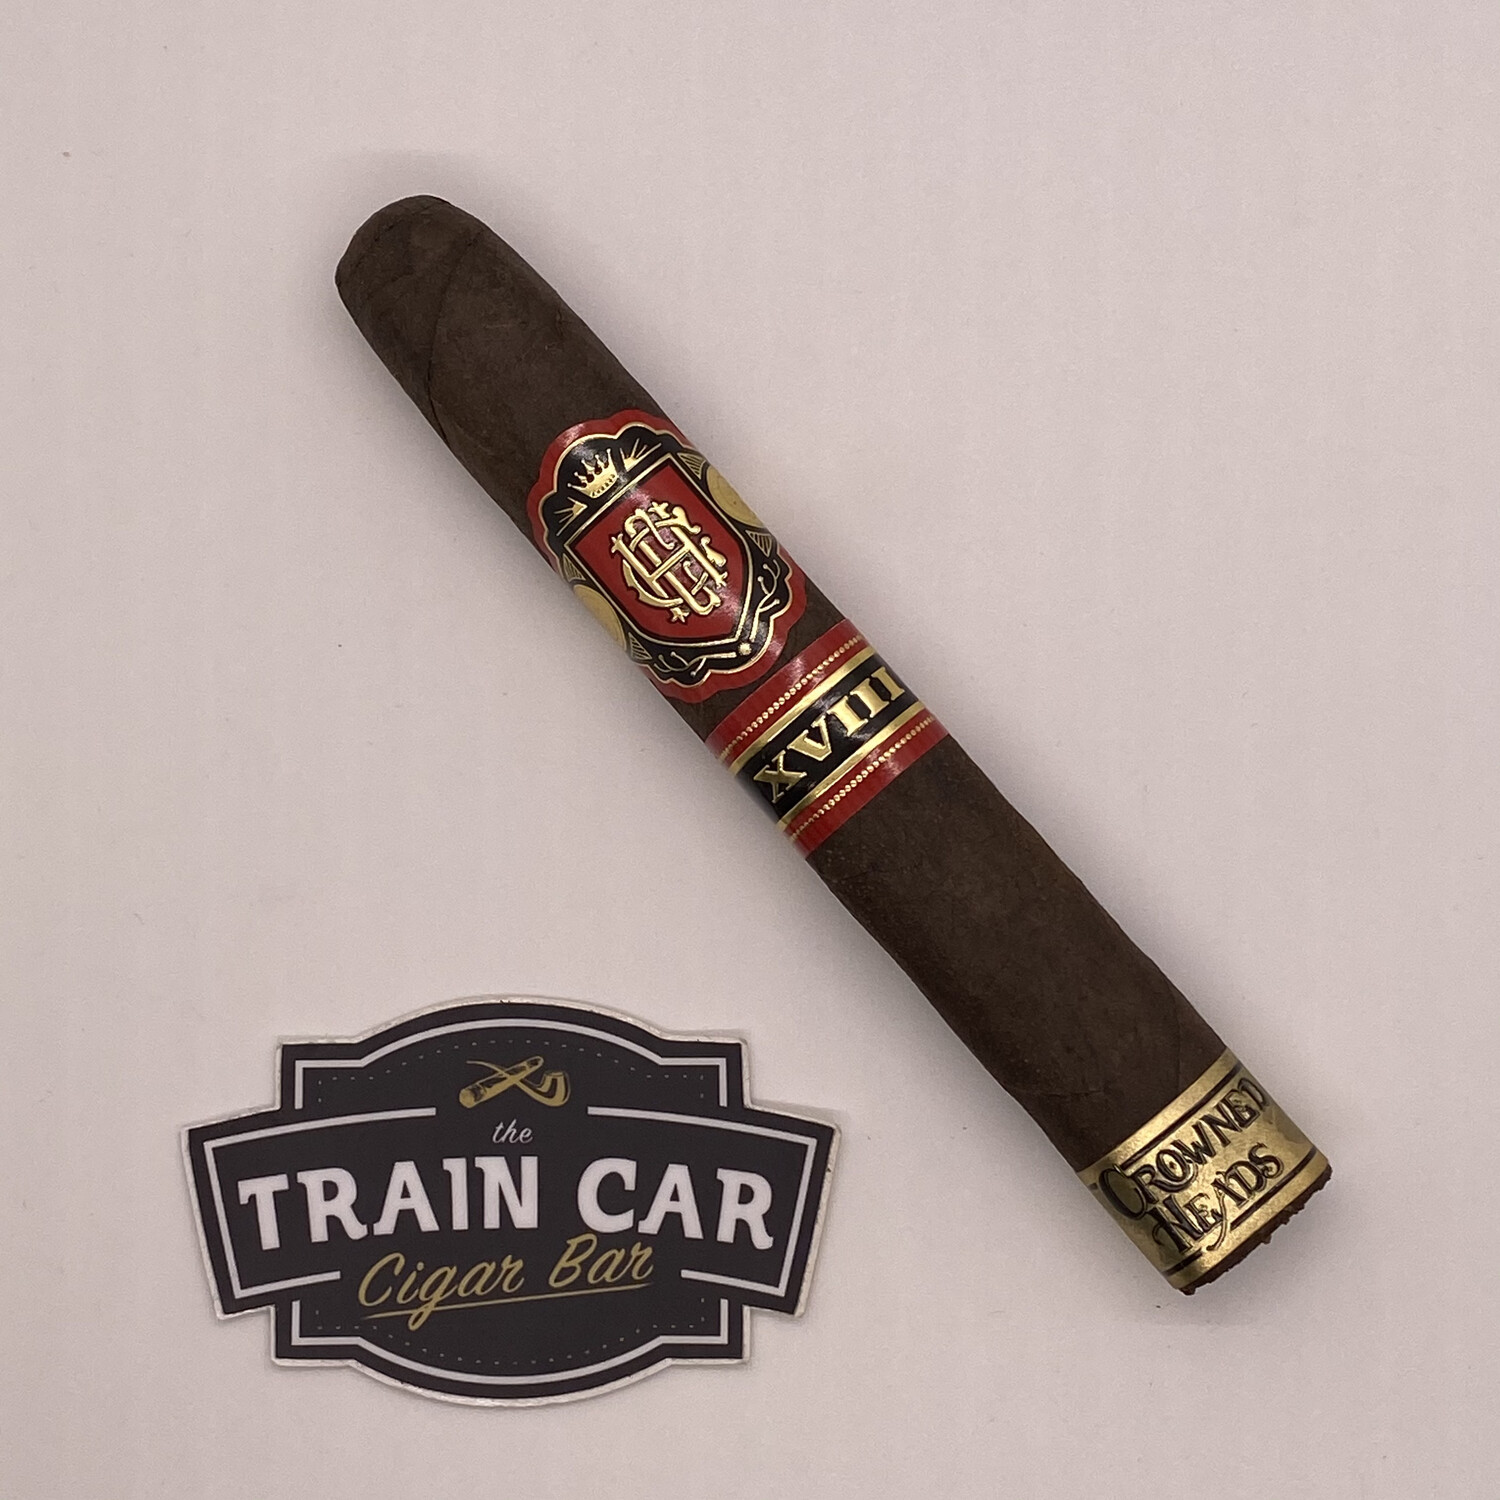 CHC Reserve XVIIII Full Court Press Limited Edition 5-7/8x52BP, 12's Crowned Heads Court